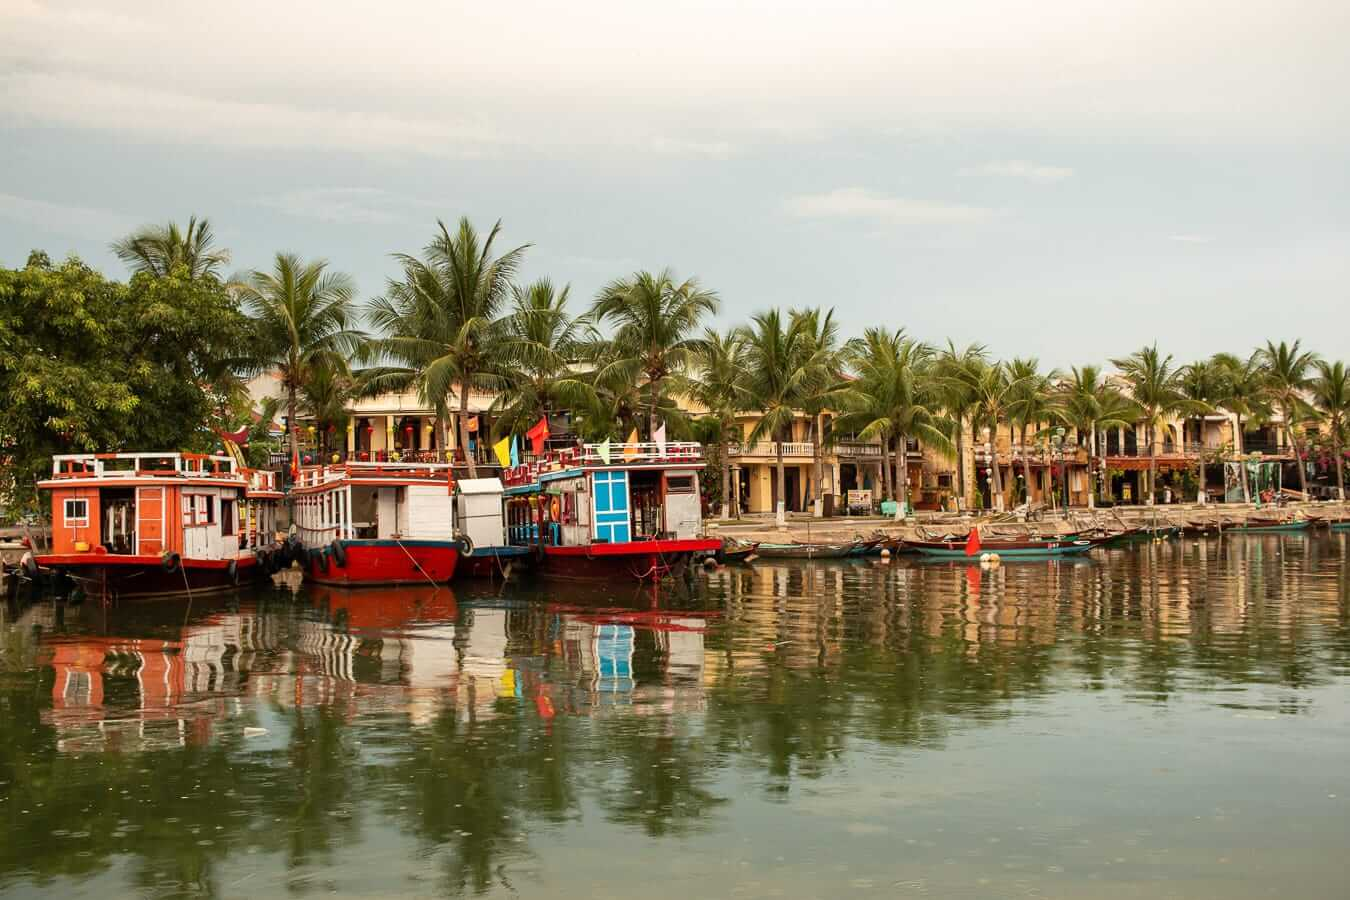 Hoi An riverfront: 3-day itinerary in Hoi An